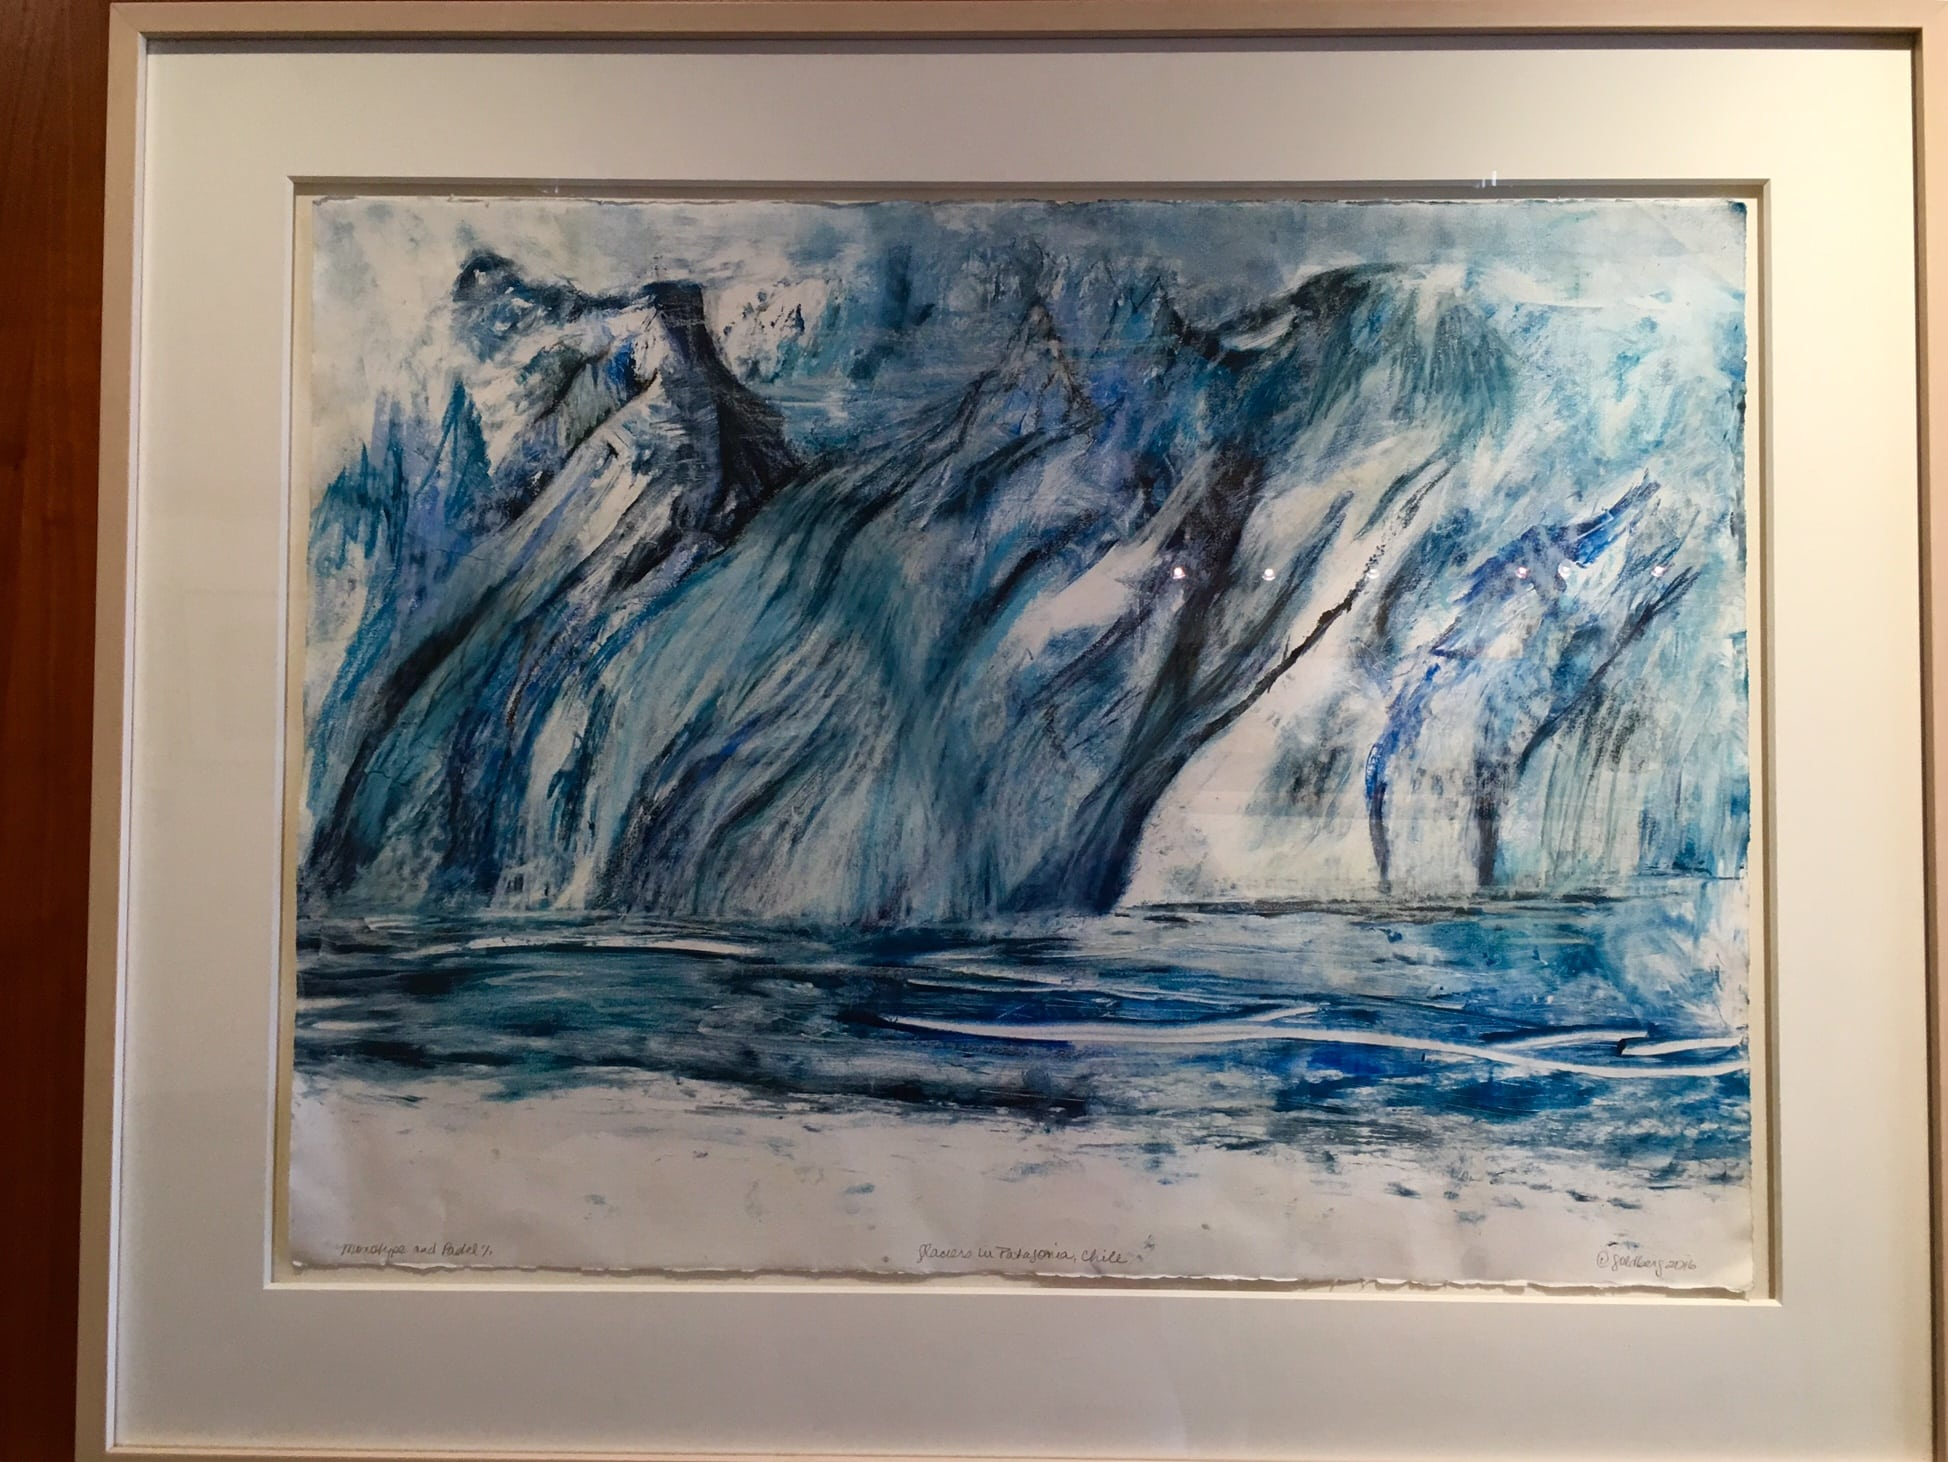 Lynda Goldberg, Glaciers in Patagonia, Chile